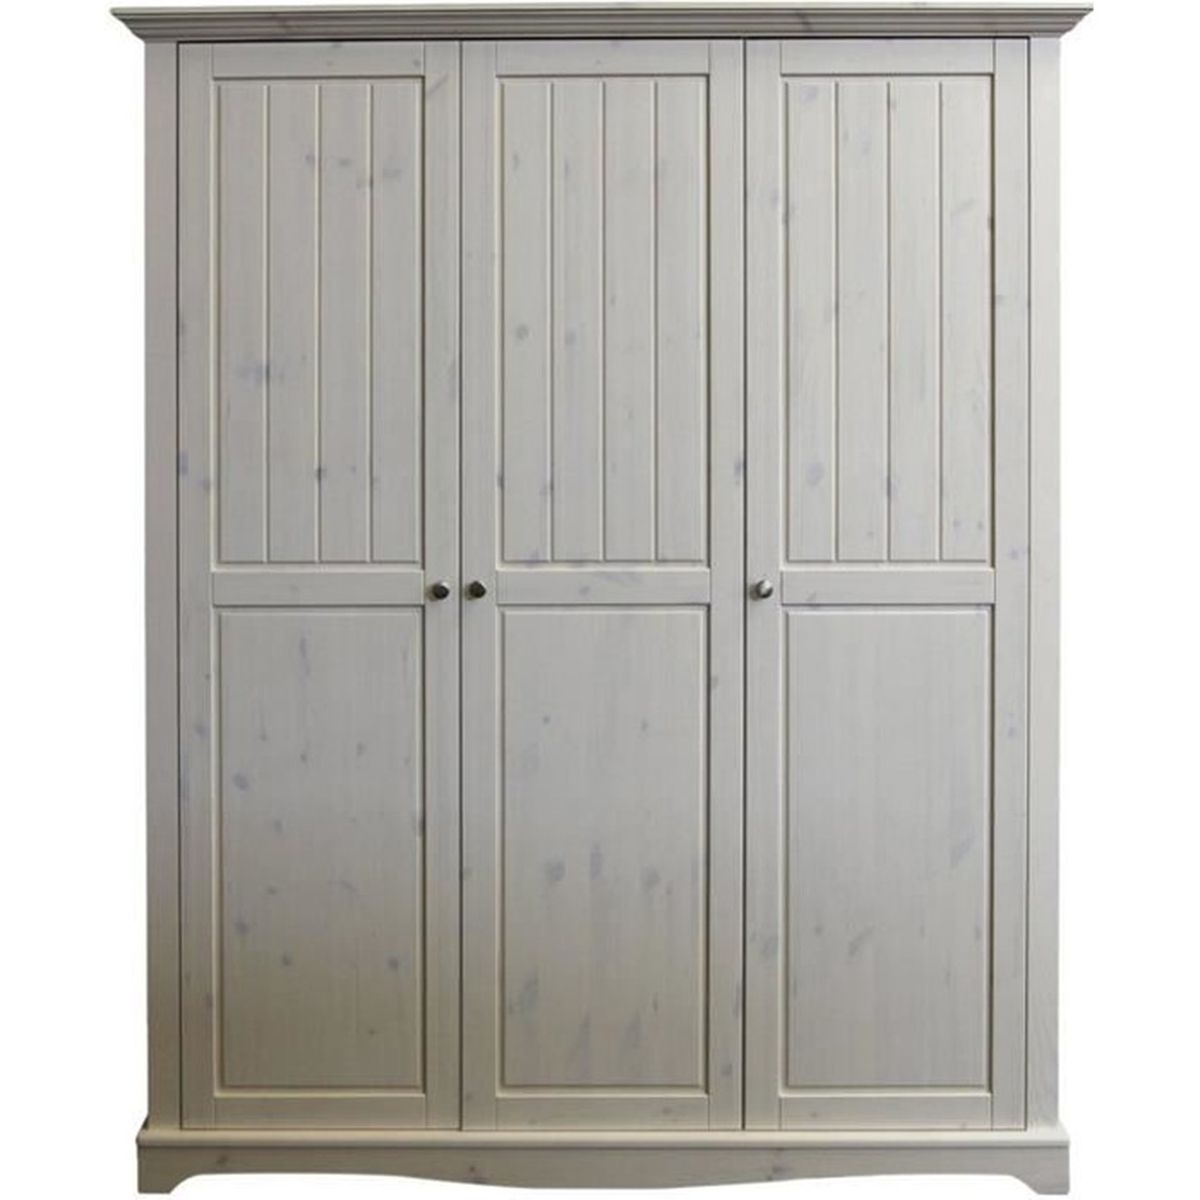 armoire pin massif chaul blanc dim 170 x 58 x 202 cm. Black Bedroom Furniture Sets. Home Design Ideas